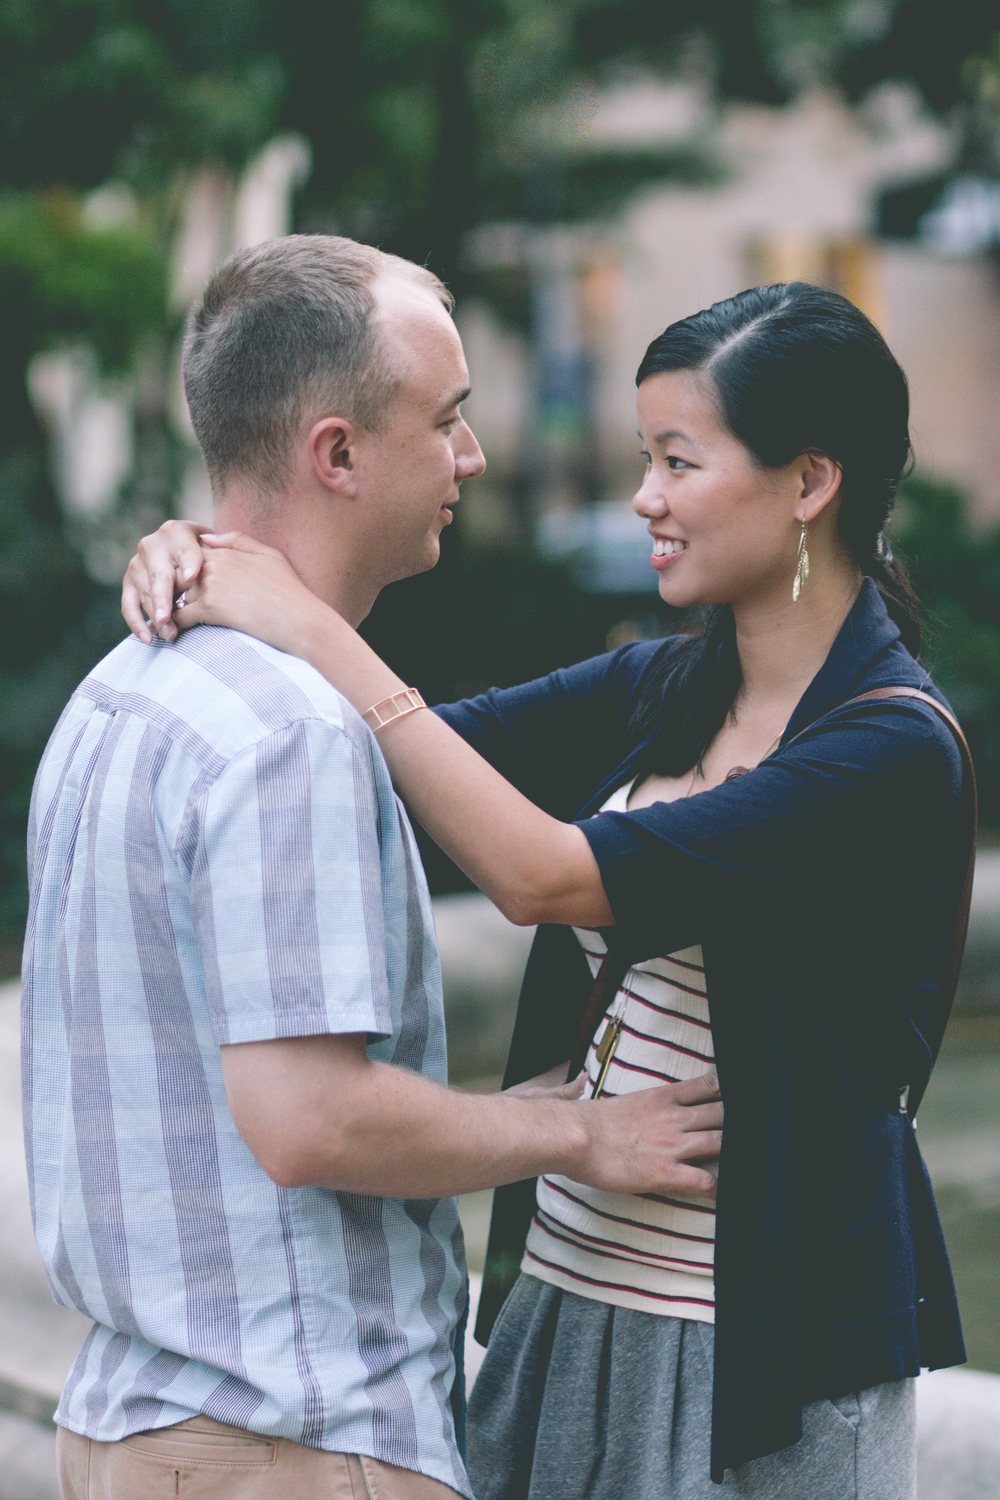 Baltimore_Christine_Jeff_Engagement_Photography-26.jpg